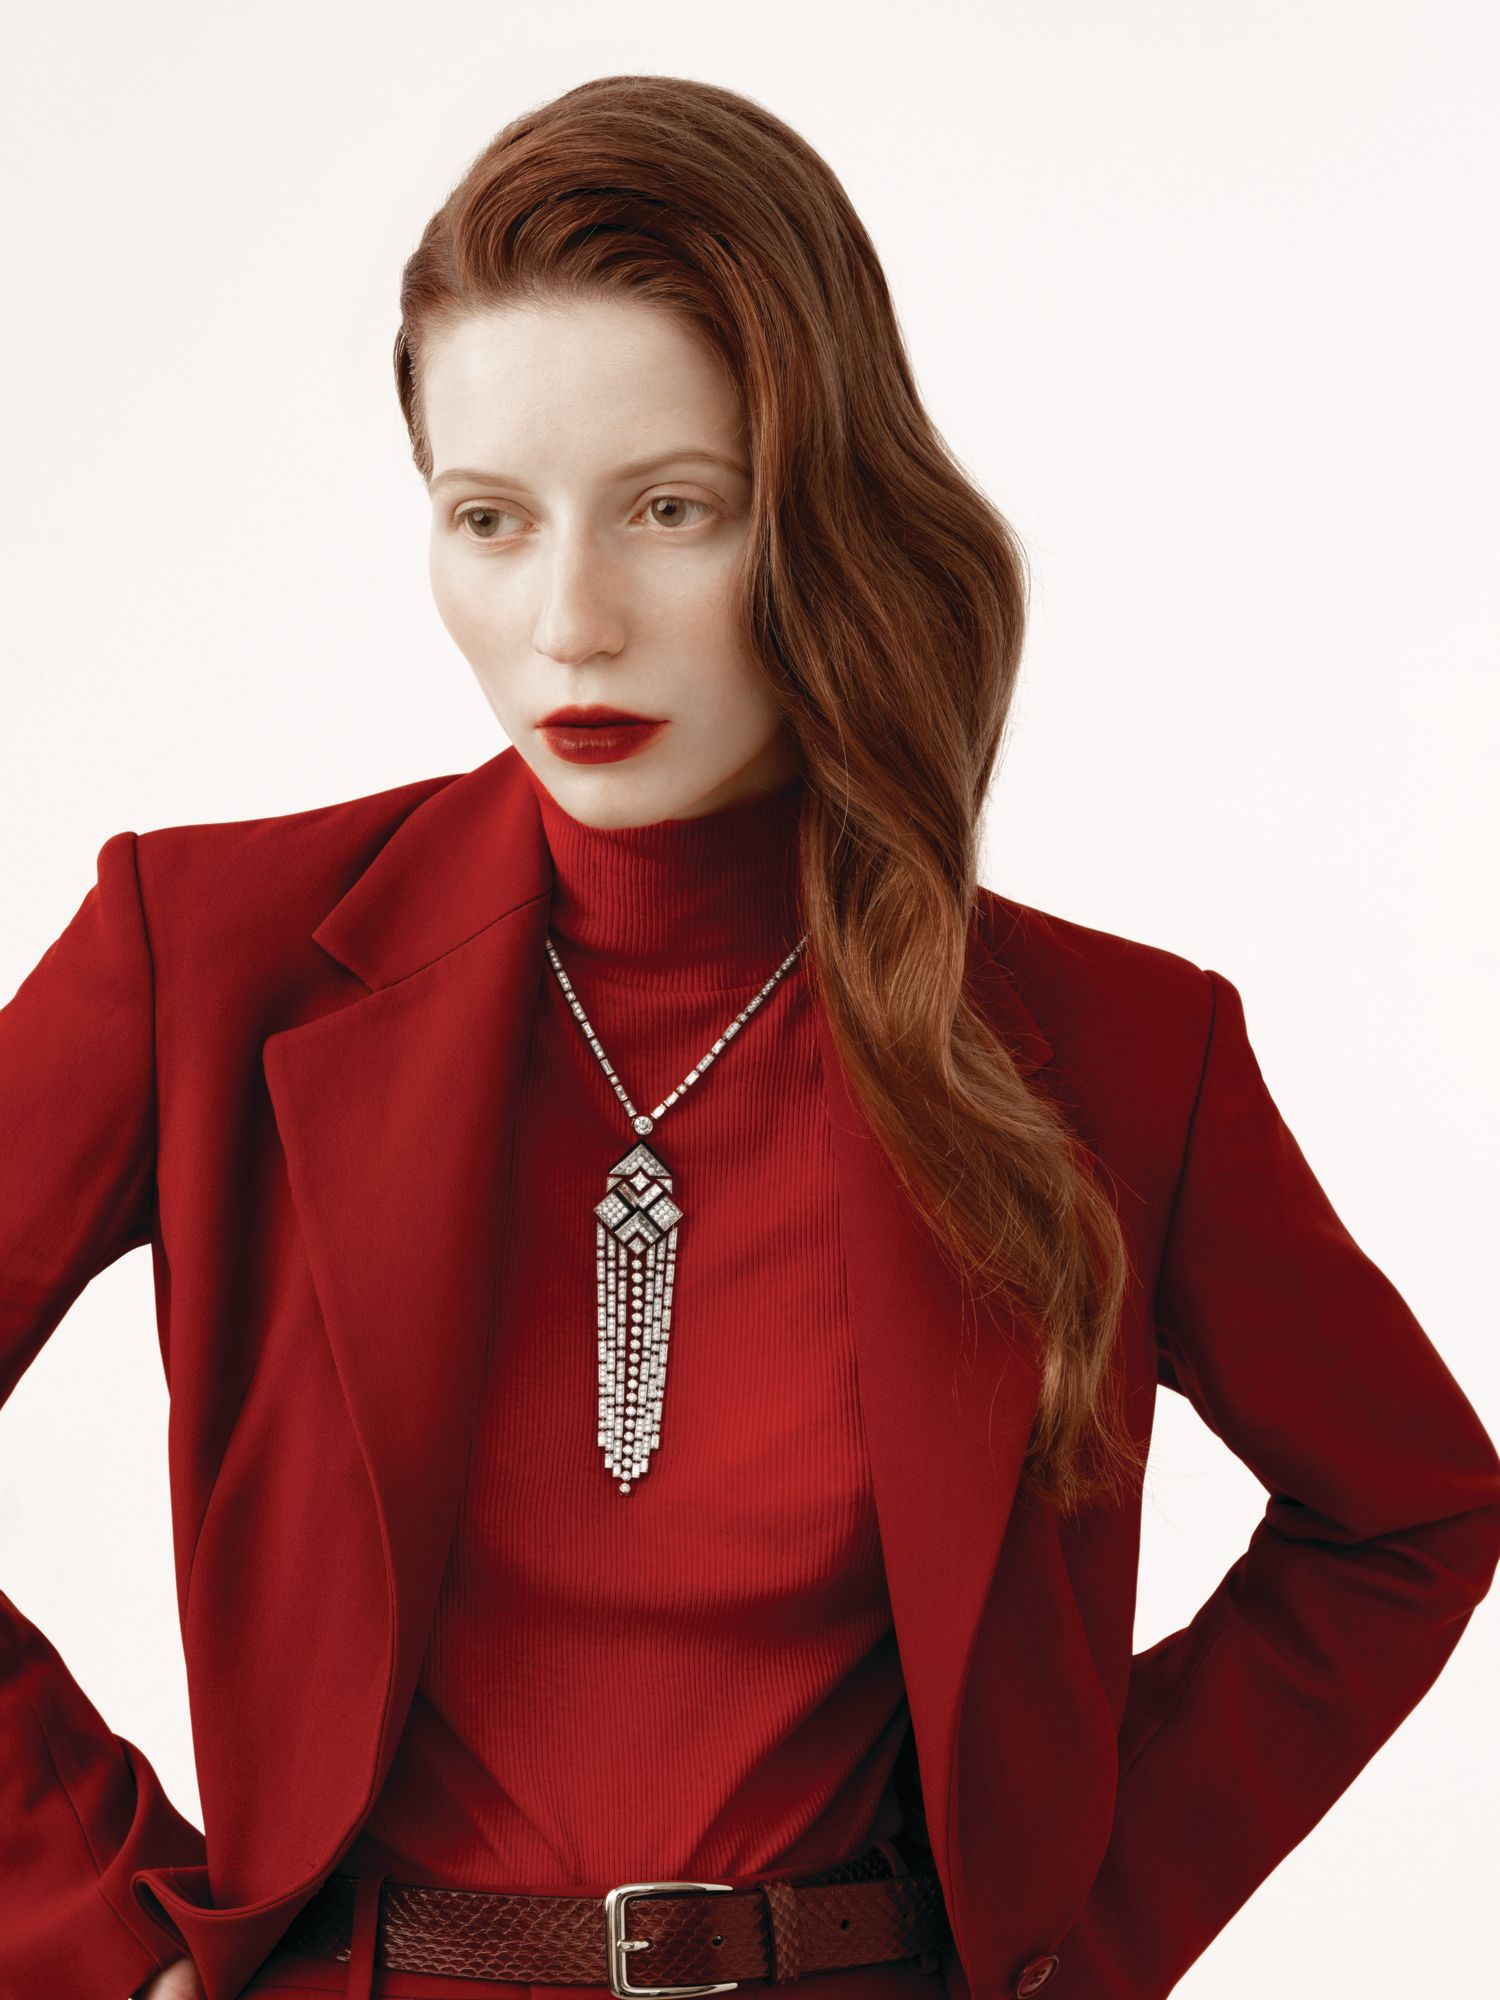 Classic High Jewellery Pieces Every Woman Should Own